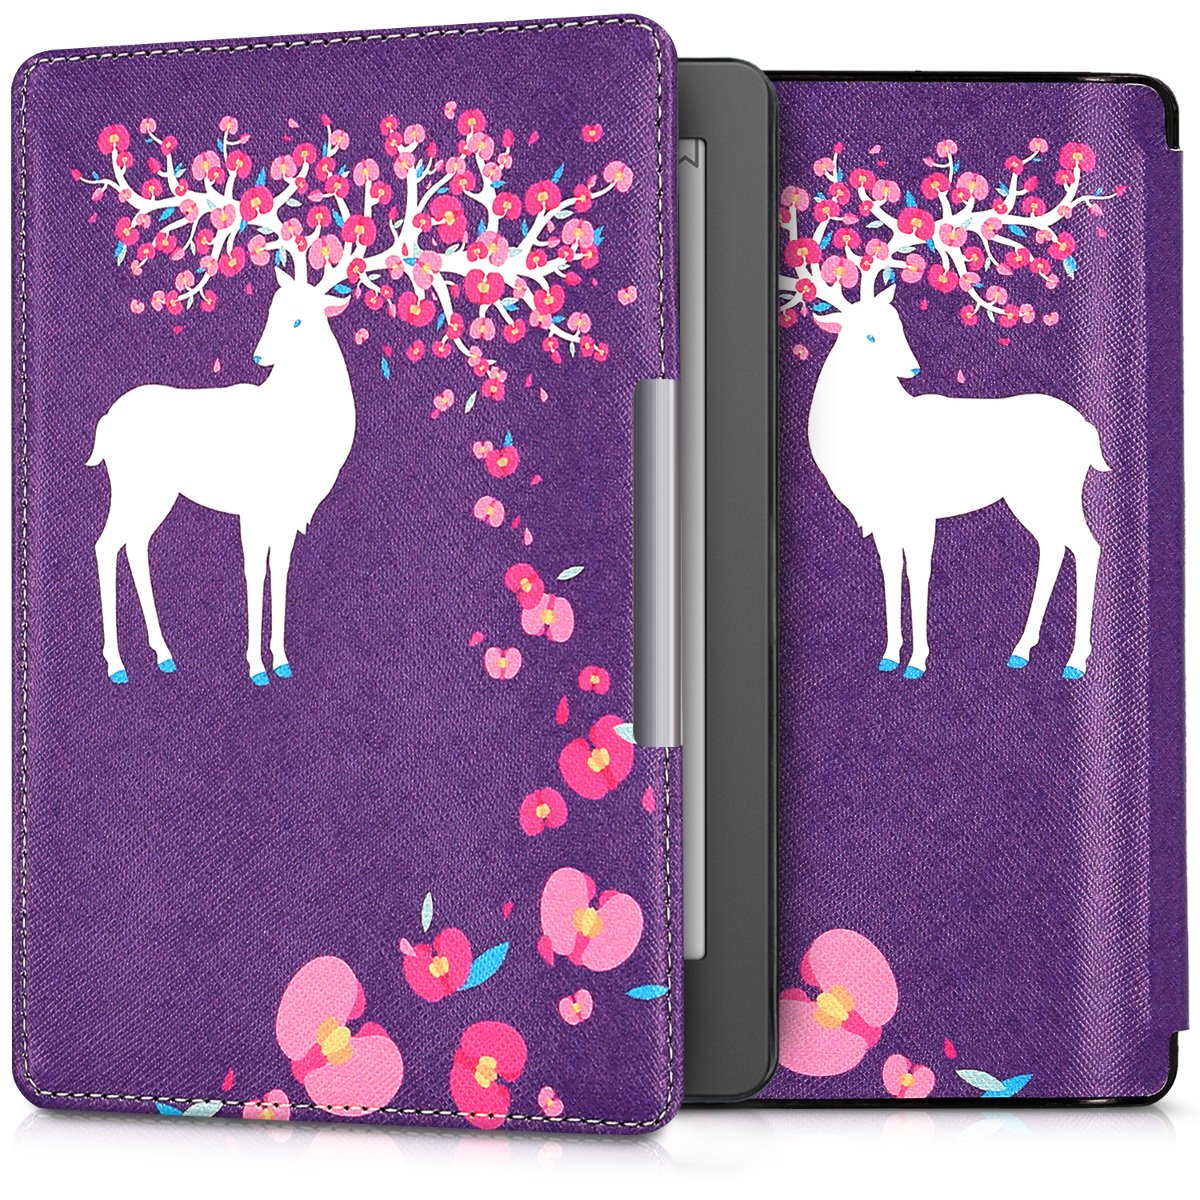 kwmobile Case for Kobo Aura Edition 2 - Book Style PU Leather Protective e-Reader Cover Folio Case - white light pink violet